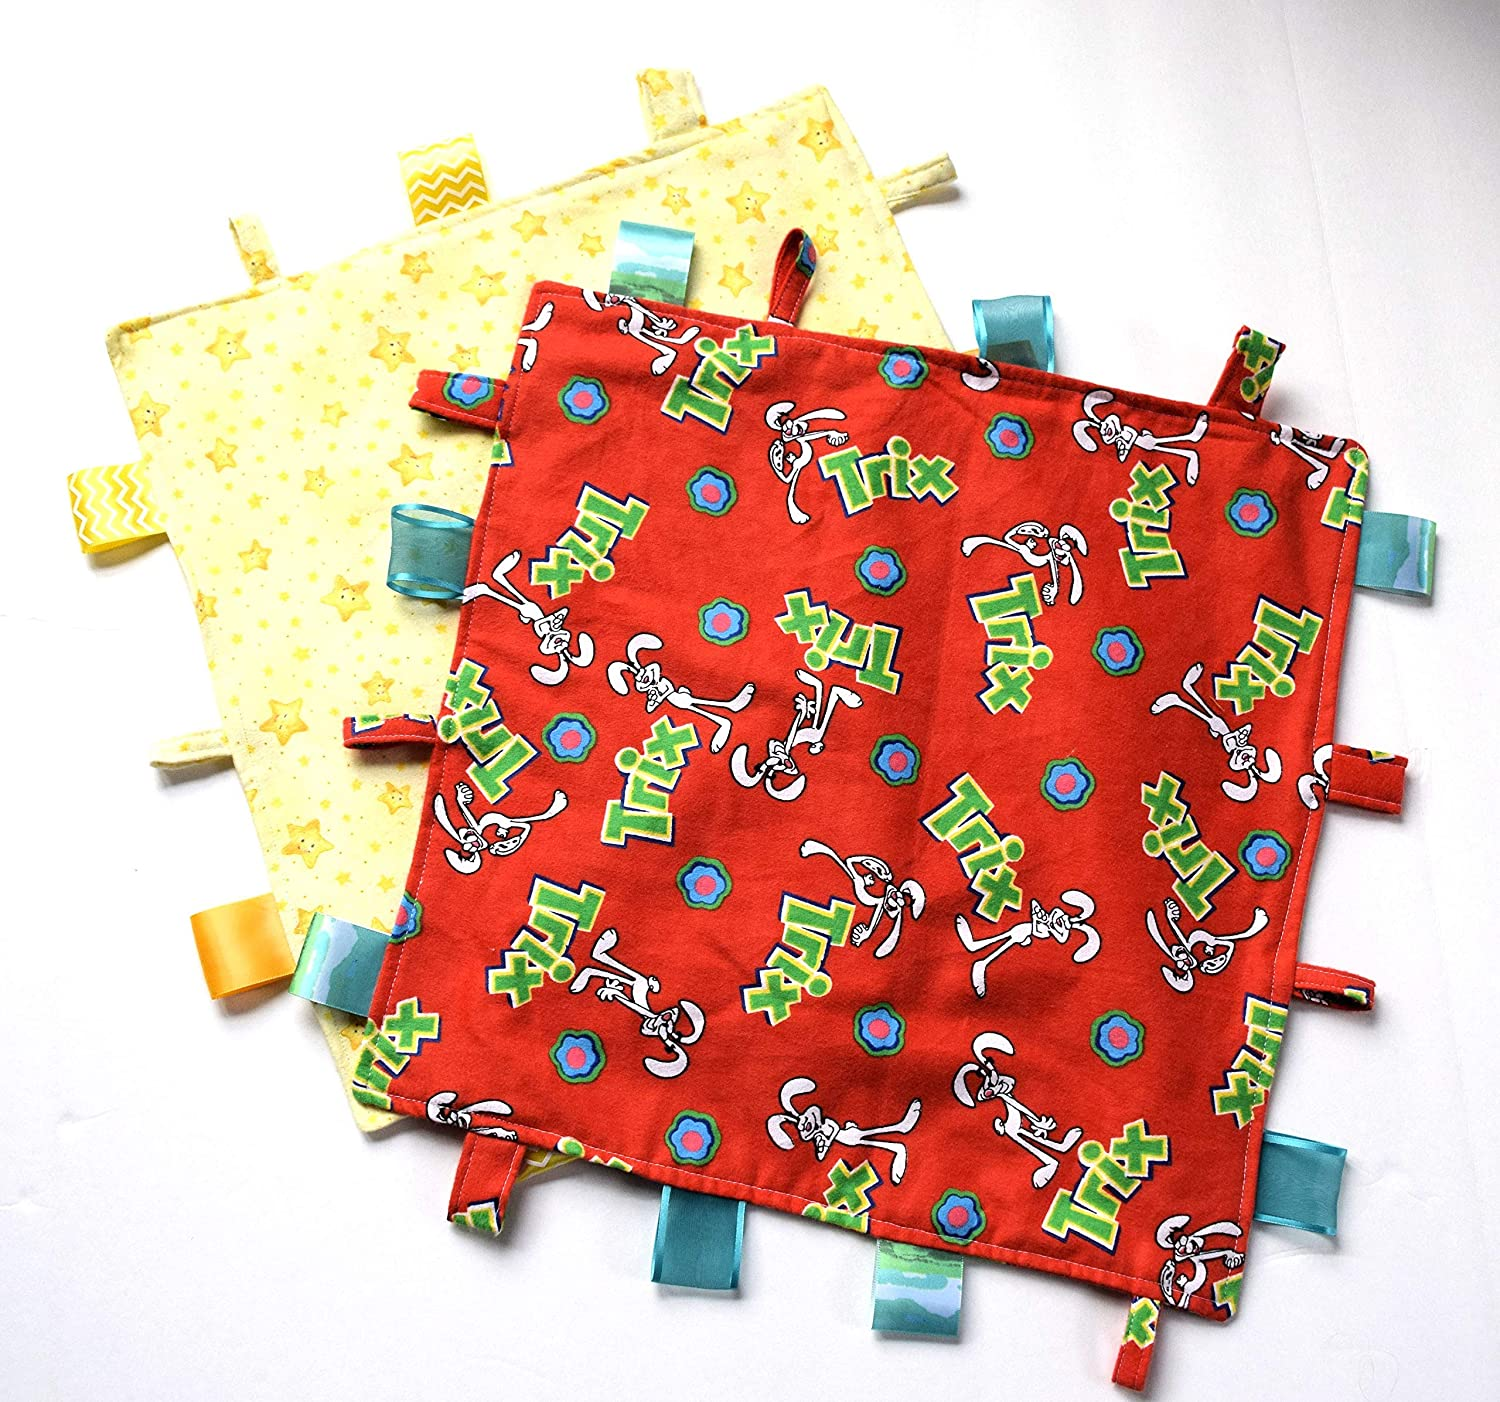 Baby Comfy Blanket Mini Blanket,Trix Rabbit or Smiley Stars on Soft Flannel Your Choice,Baby Lovey ONE